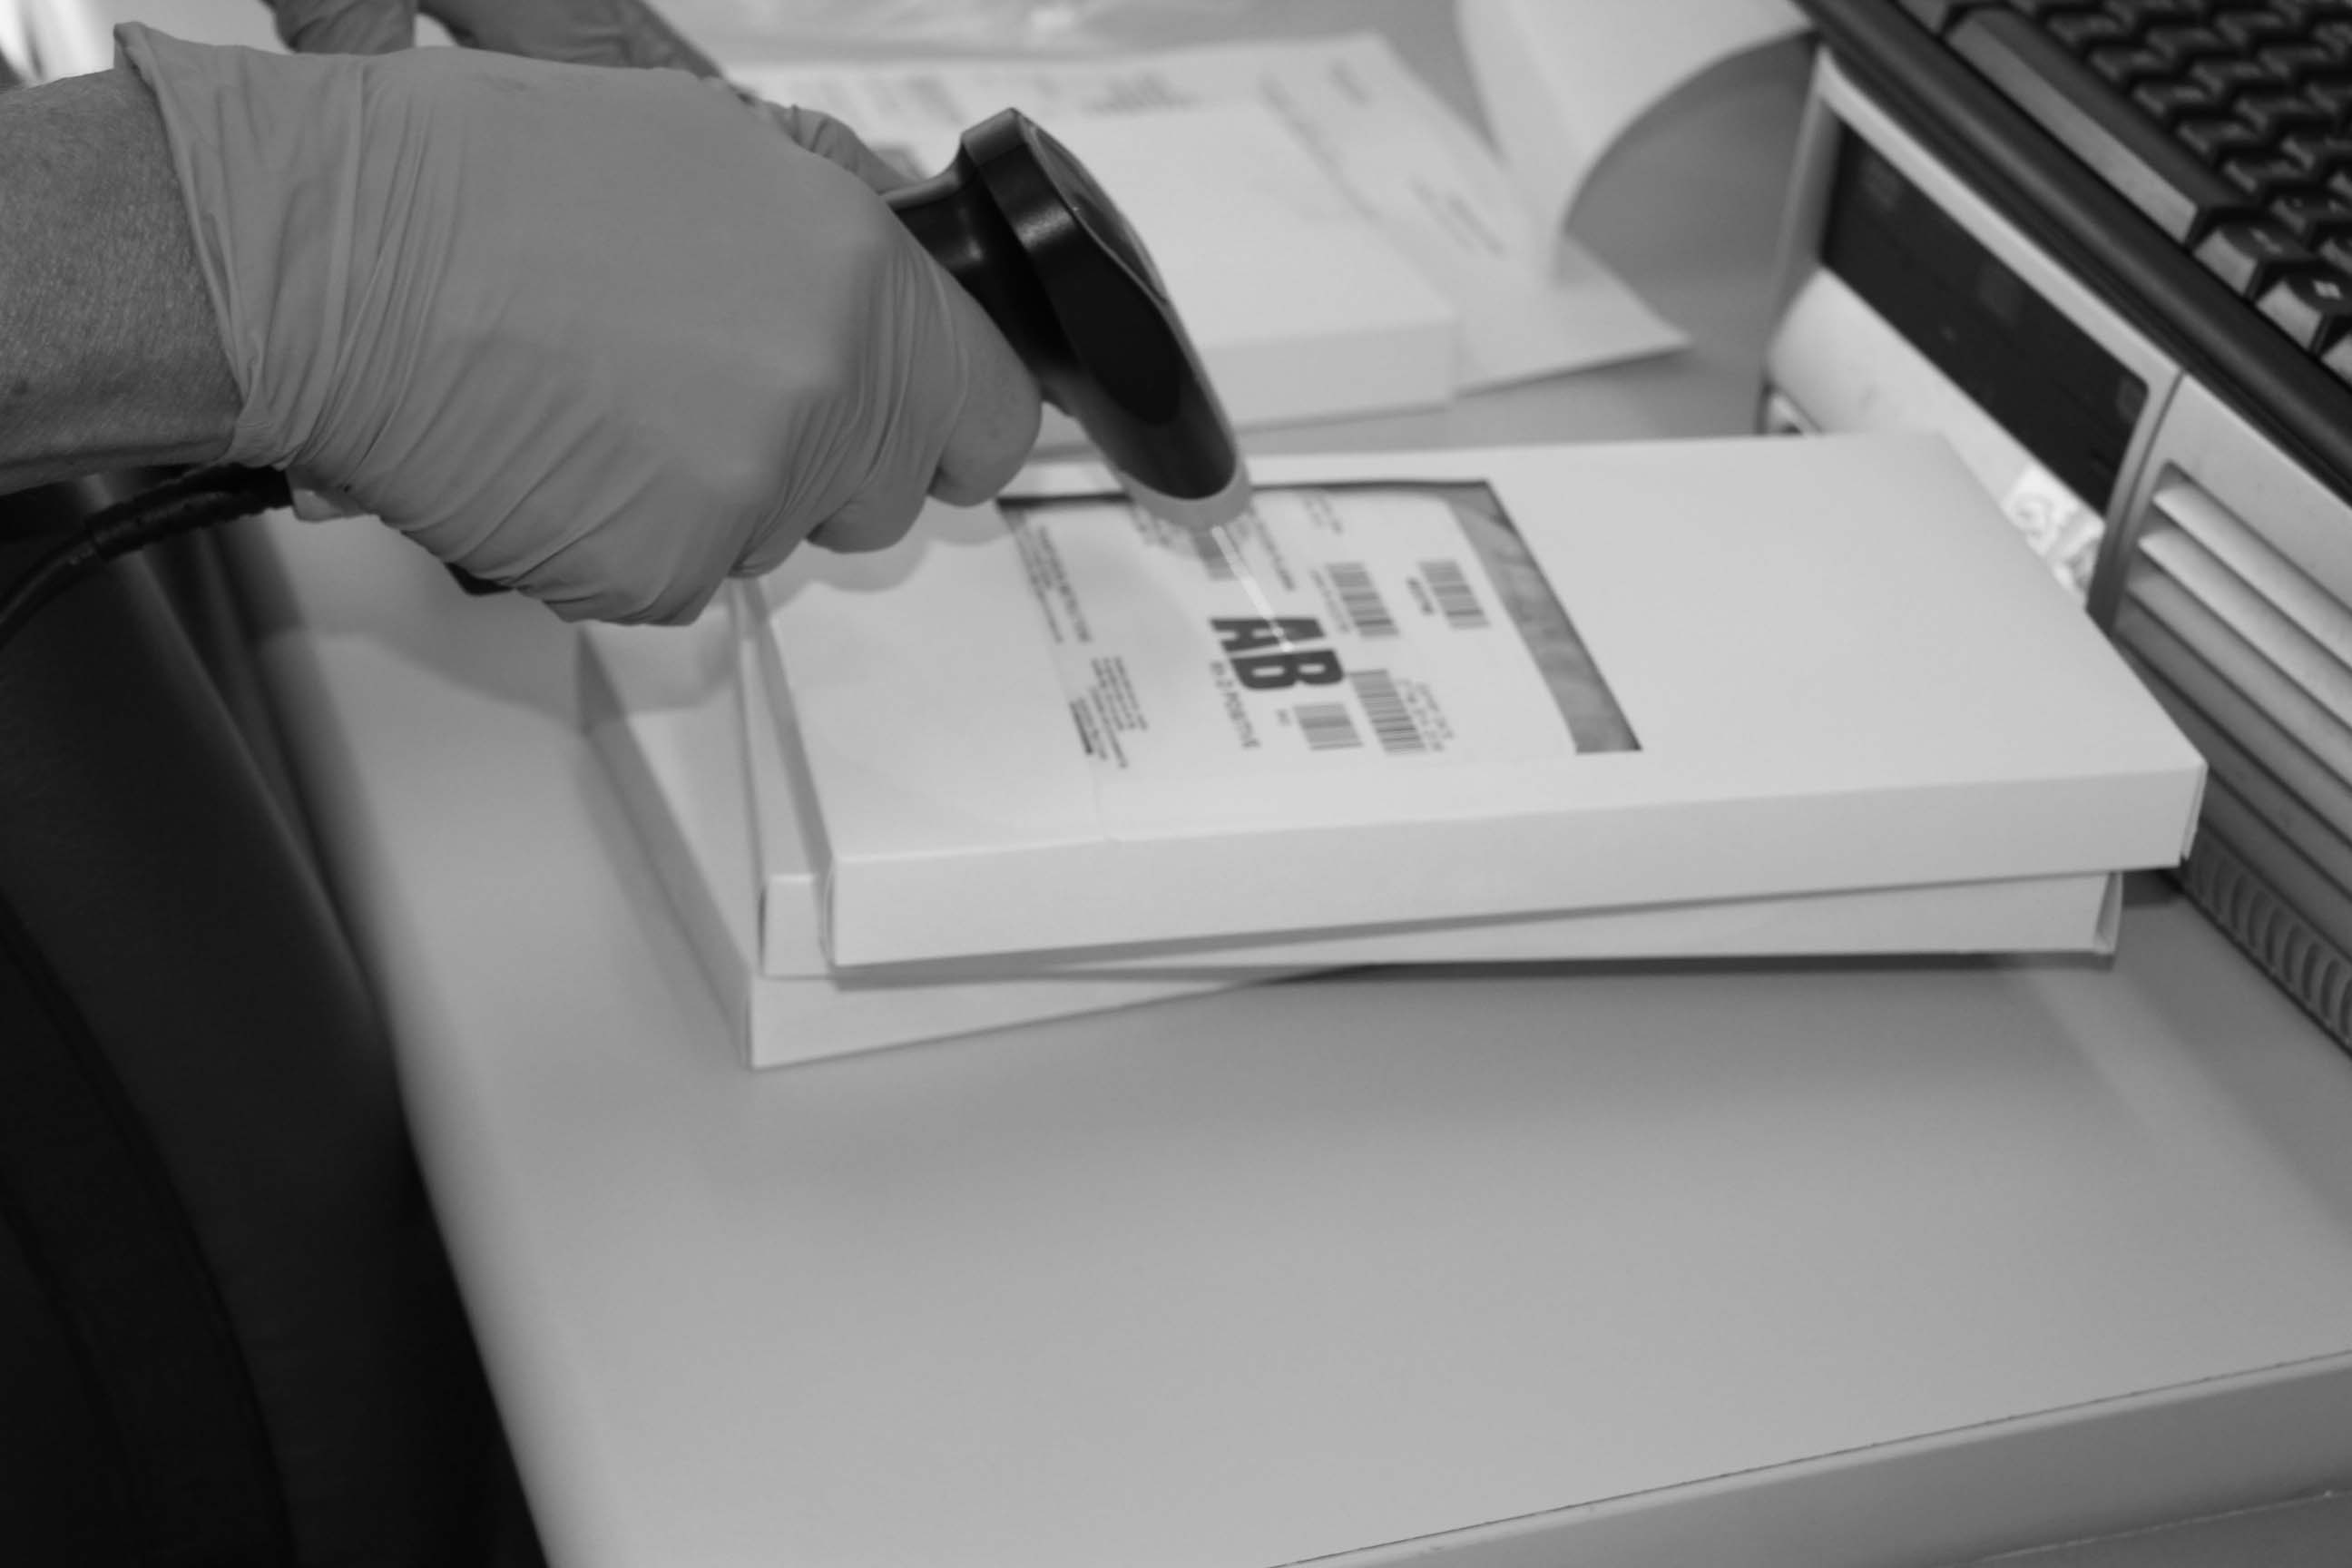 Photo of scanning blood product in black and white